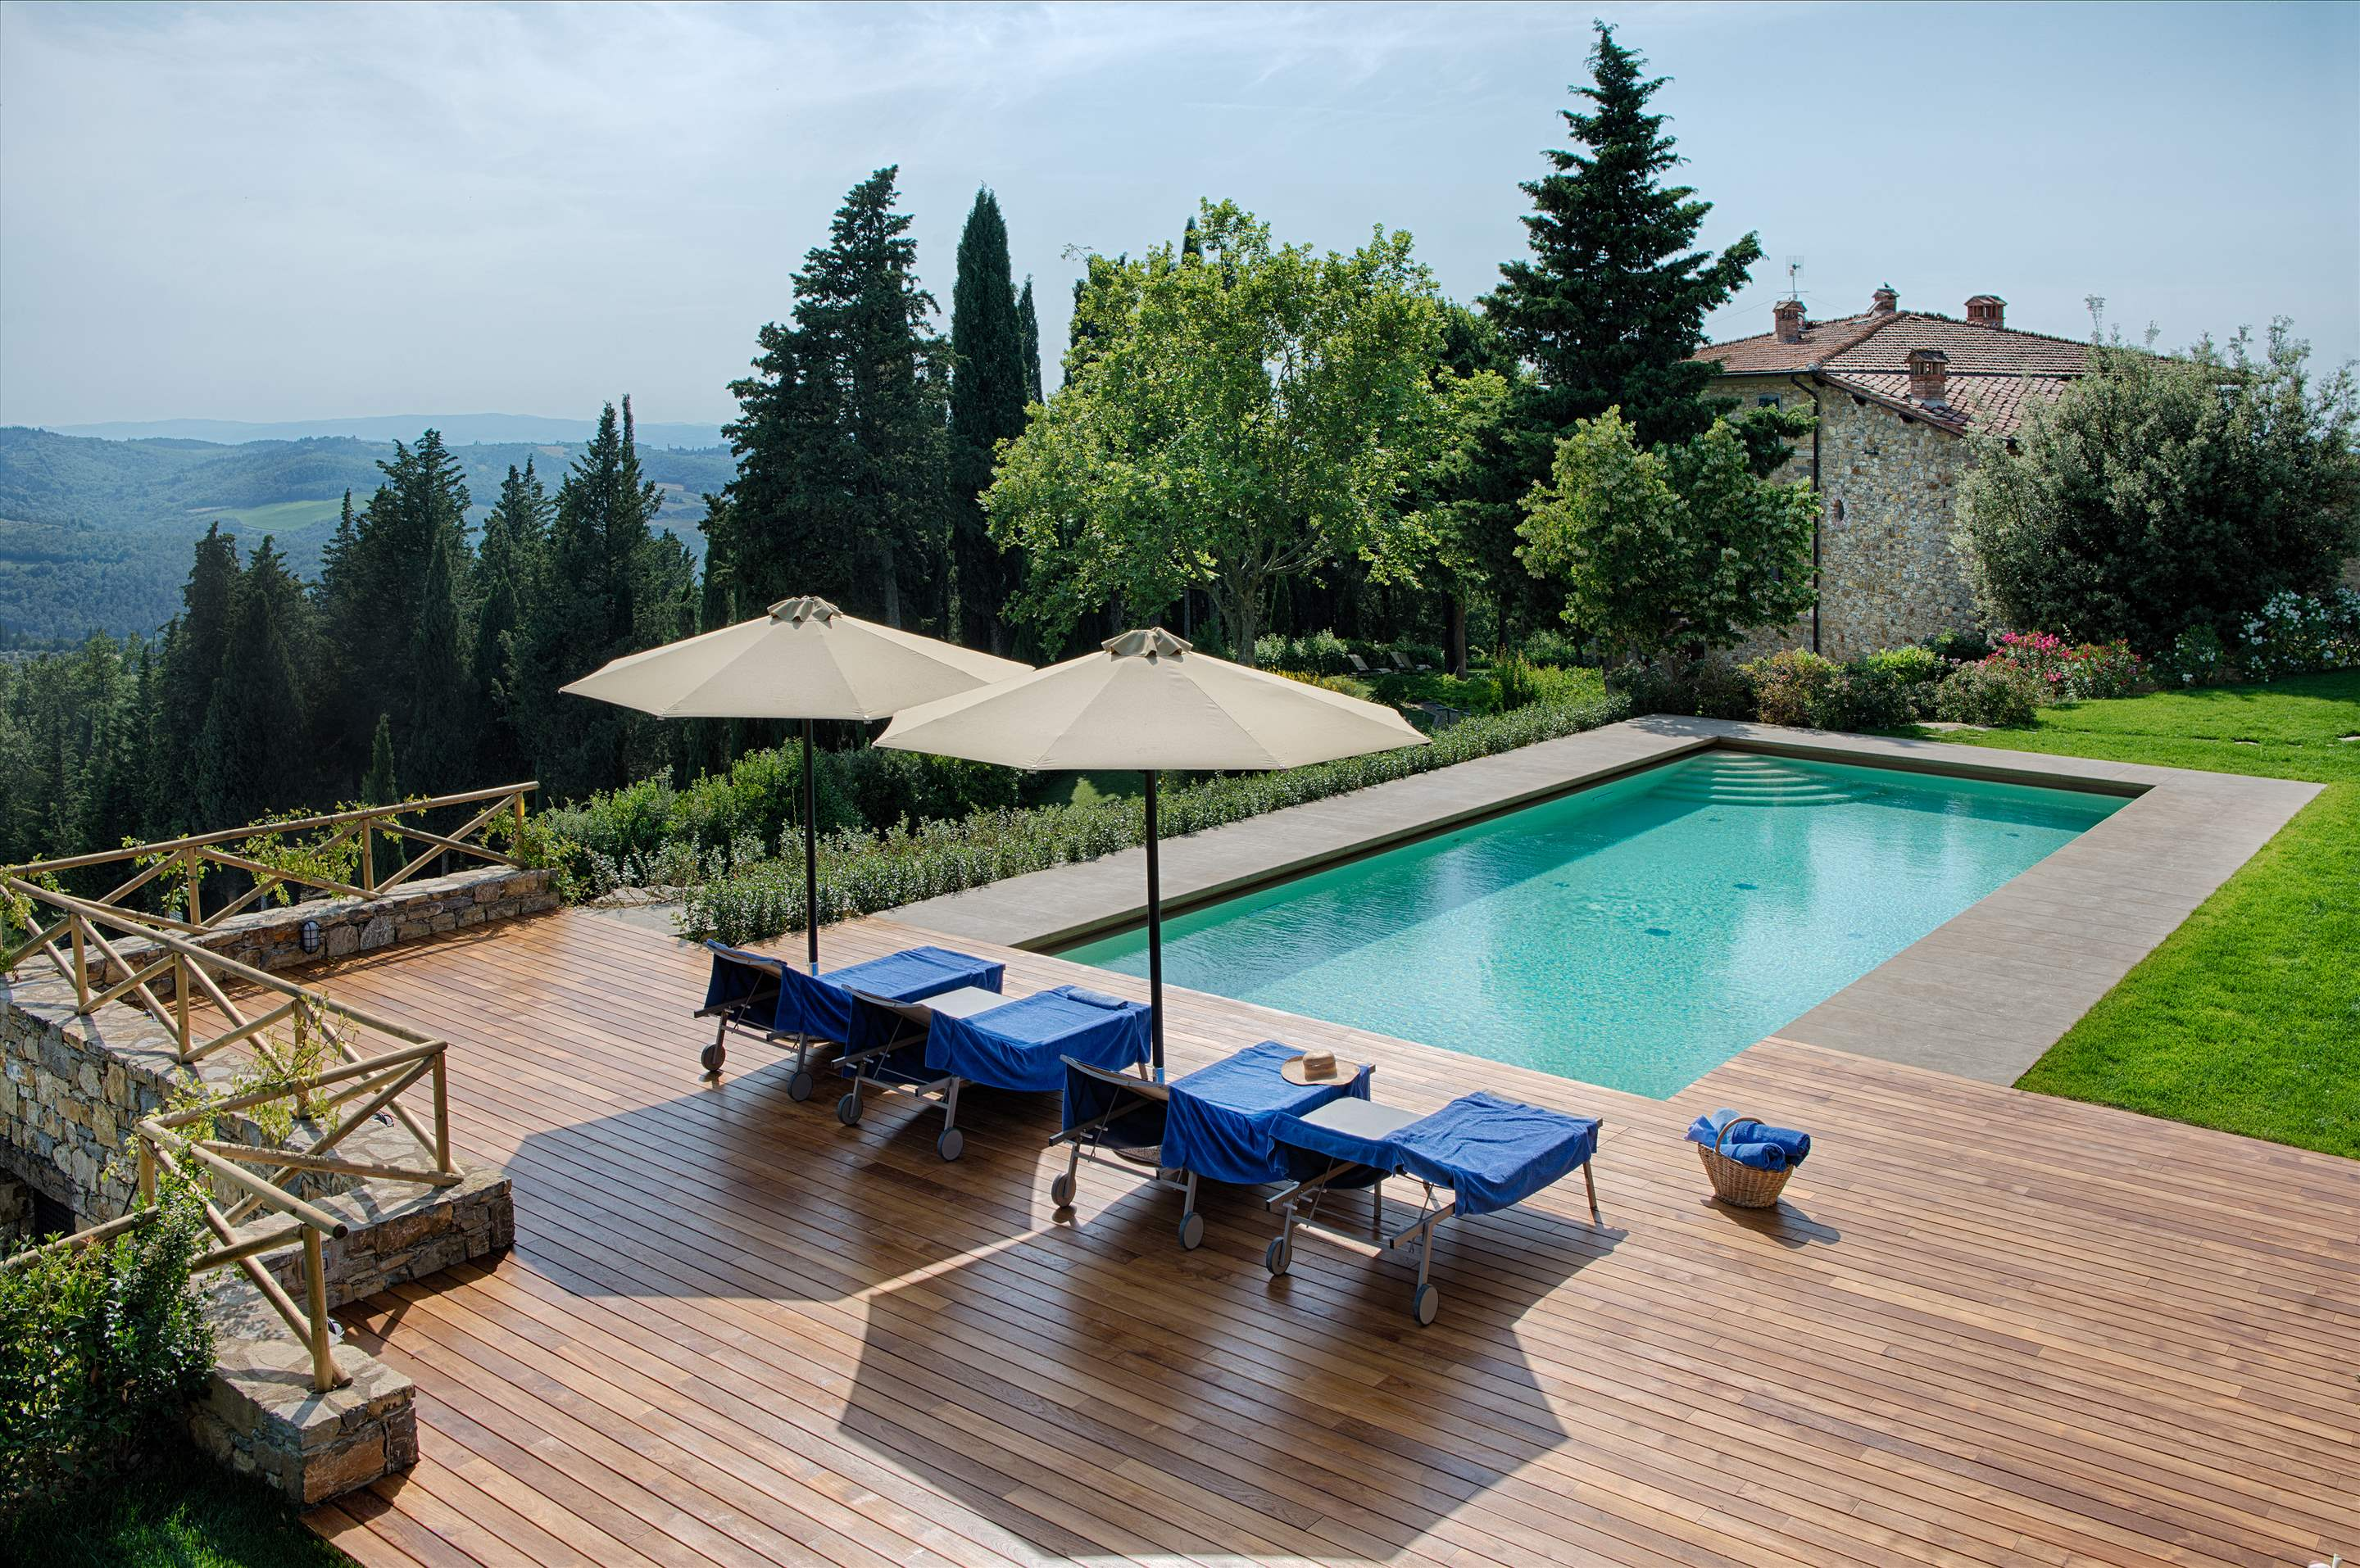 Villa La Valetta, Apt Rosa + 2 Bedrooms, 3 bedroom villa in Chianti & Countryside, Tuscany Photo #1